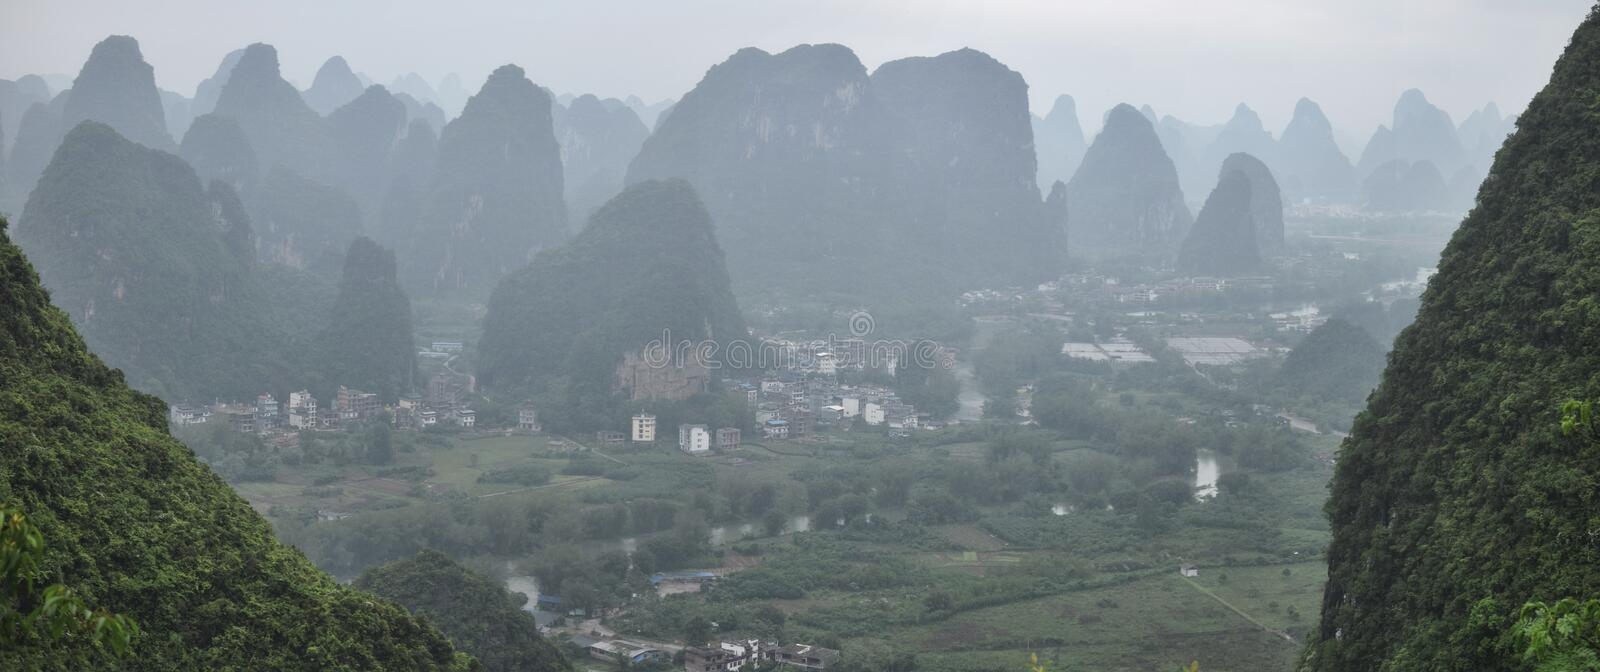 The area around small town Yangshuo in Guangxi Zhuang Autonomous Region in China. Is renowned for its karst landscape where there are hundred upon hundred of stock image